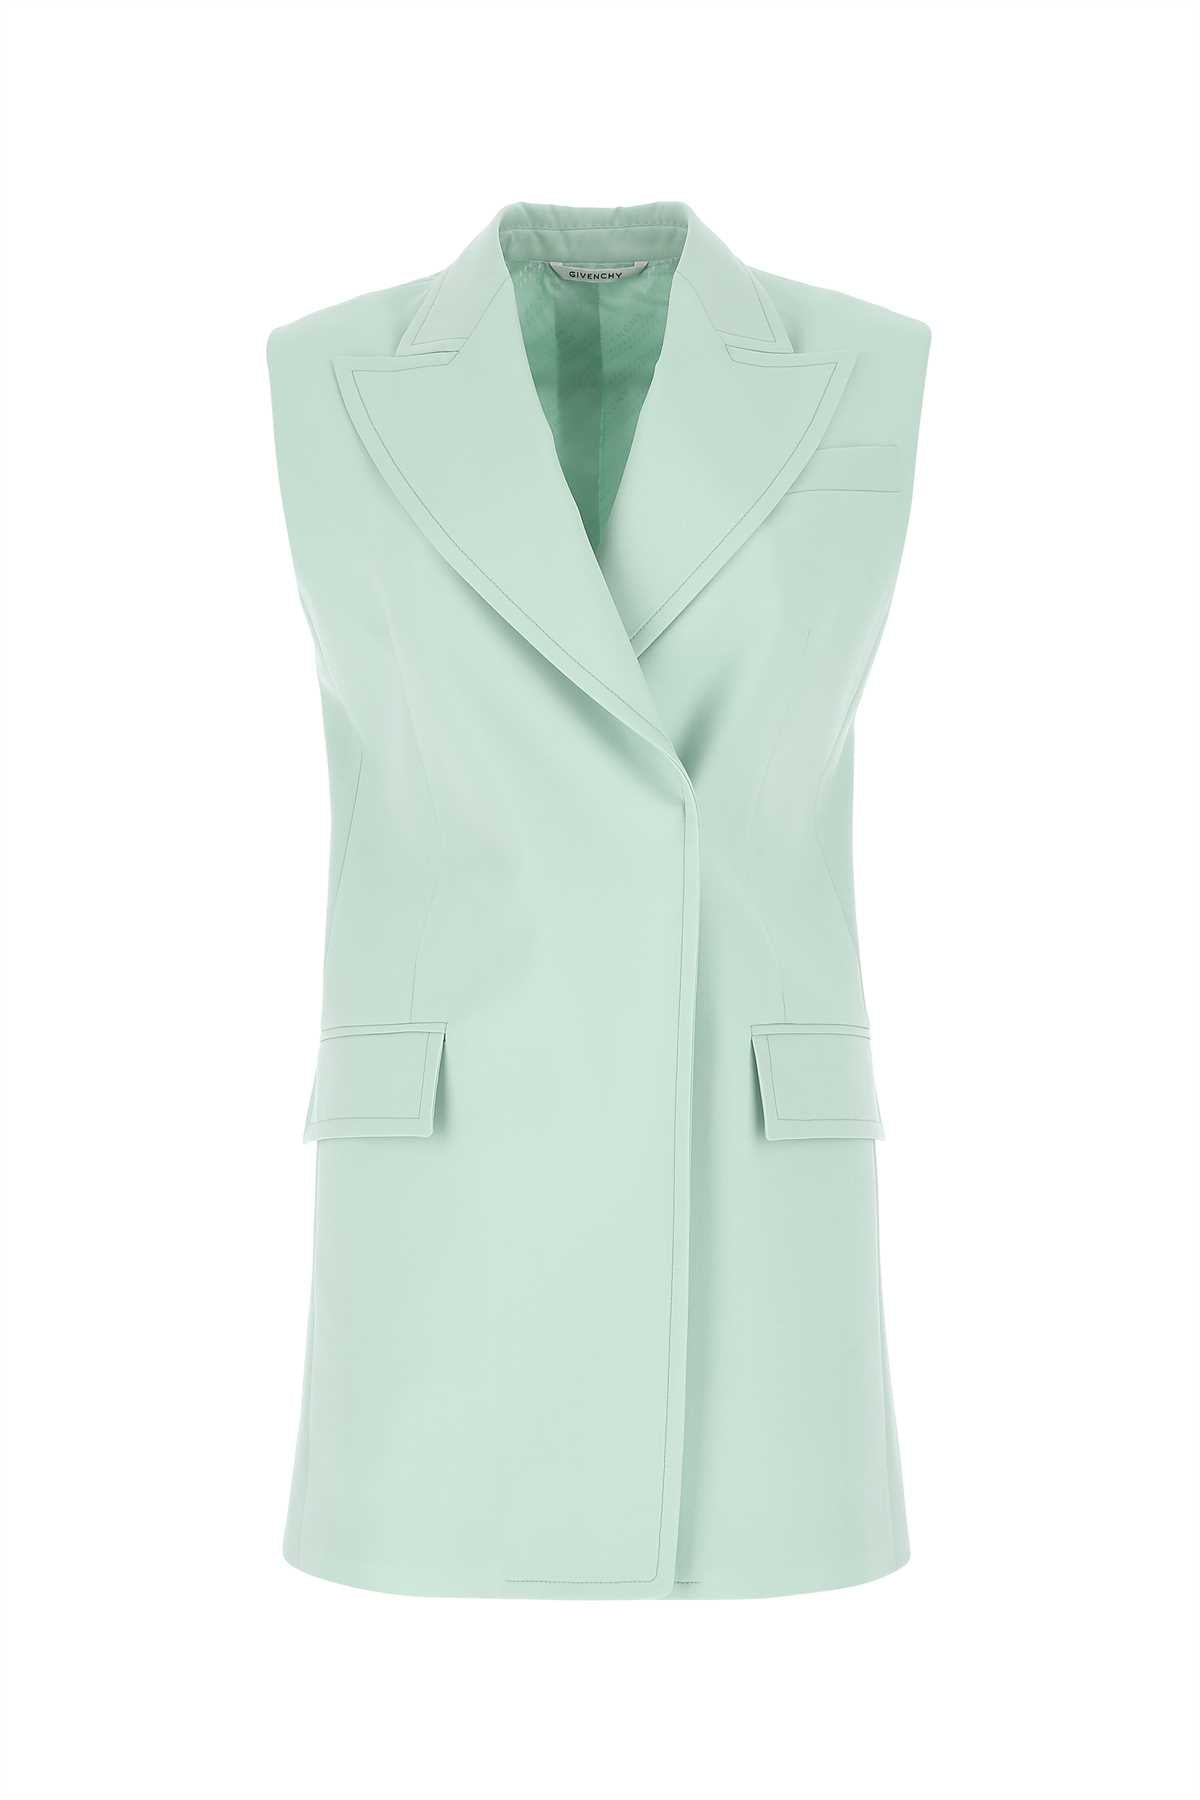 Givenchy Wools GIVENCHY DOUBLE BREASTED SLEEVELESS JACKET